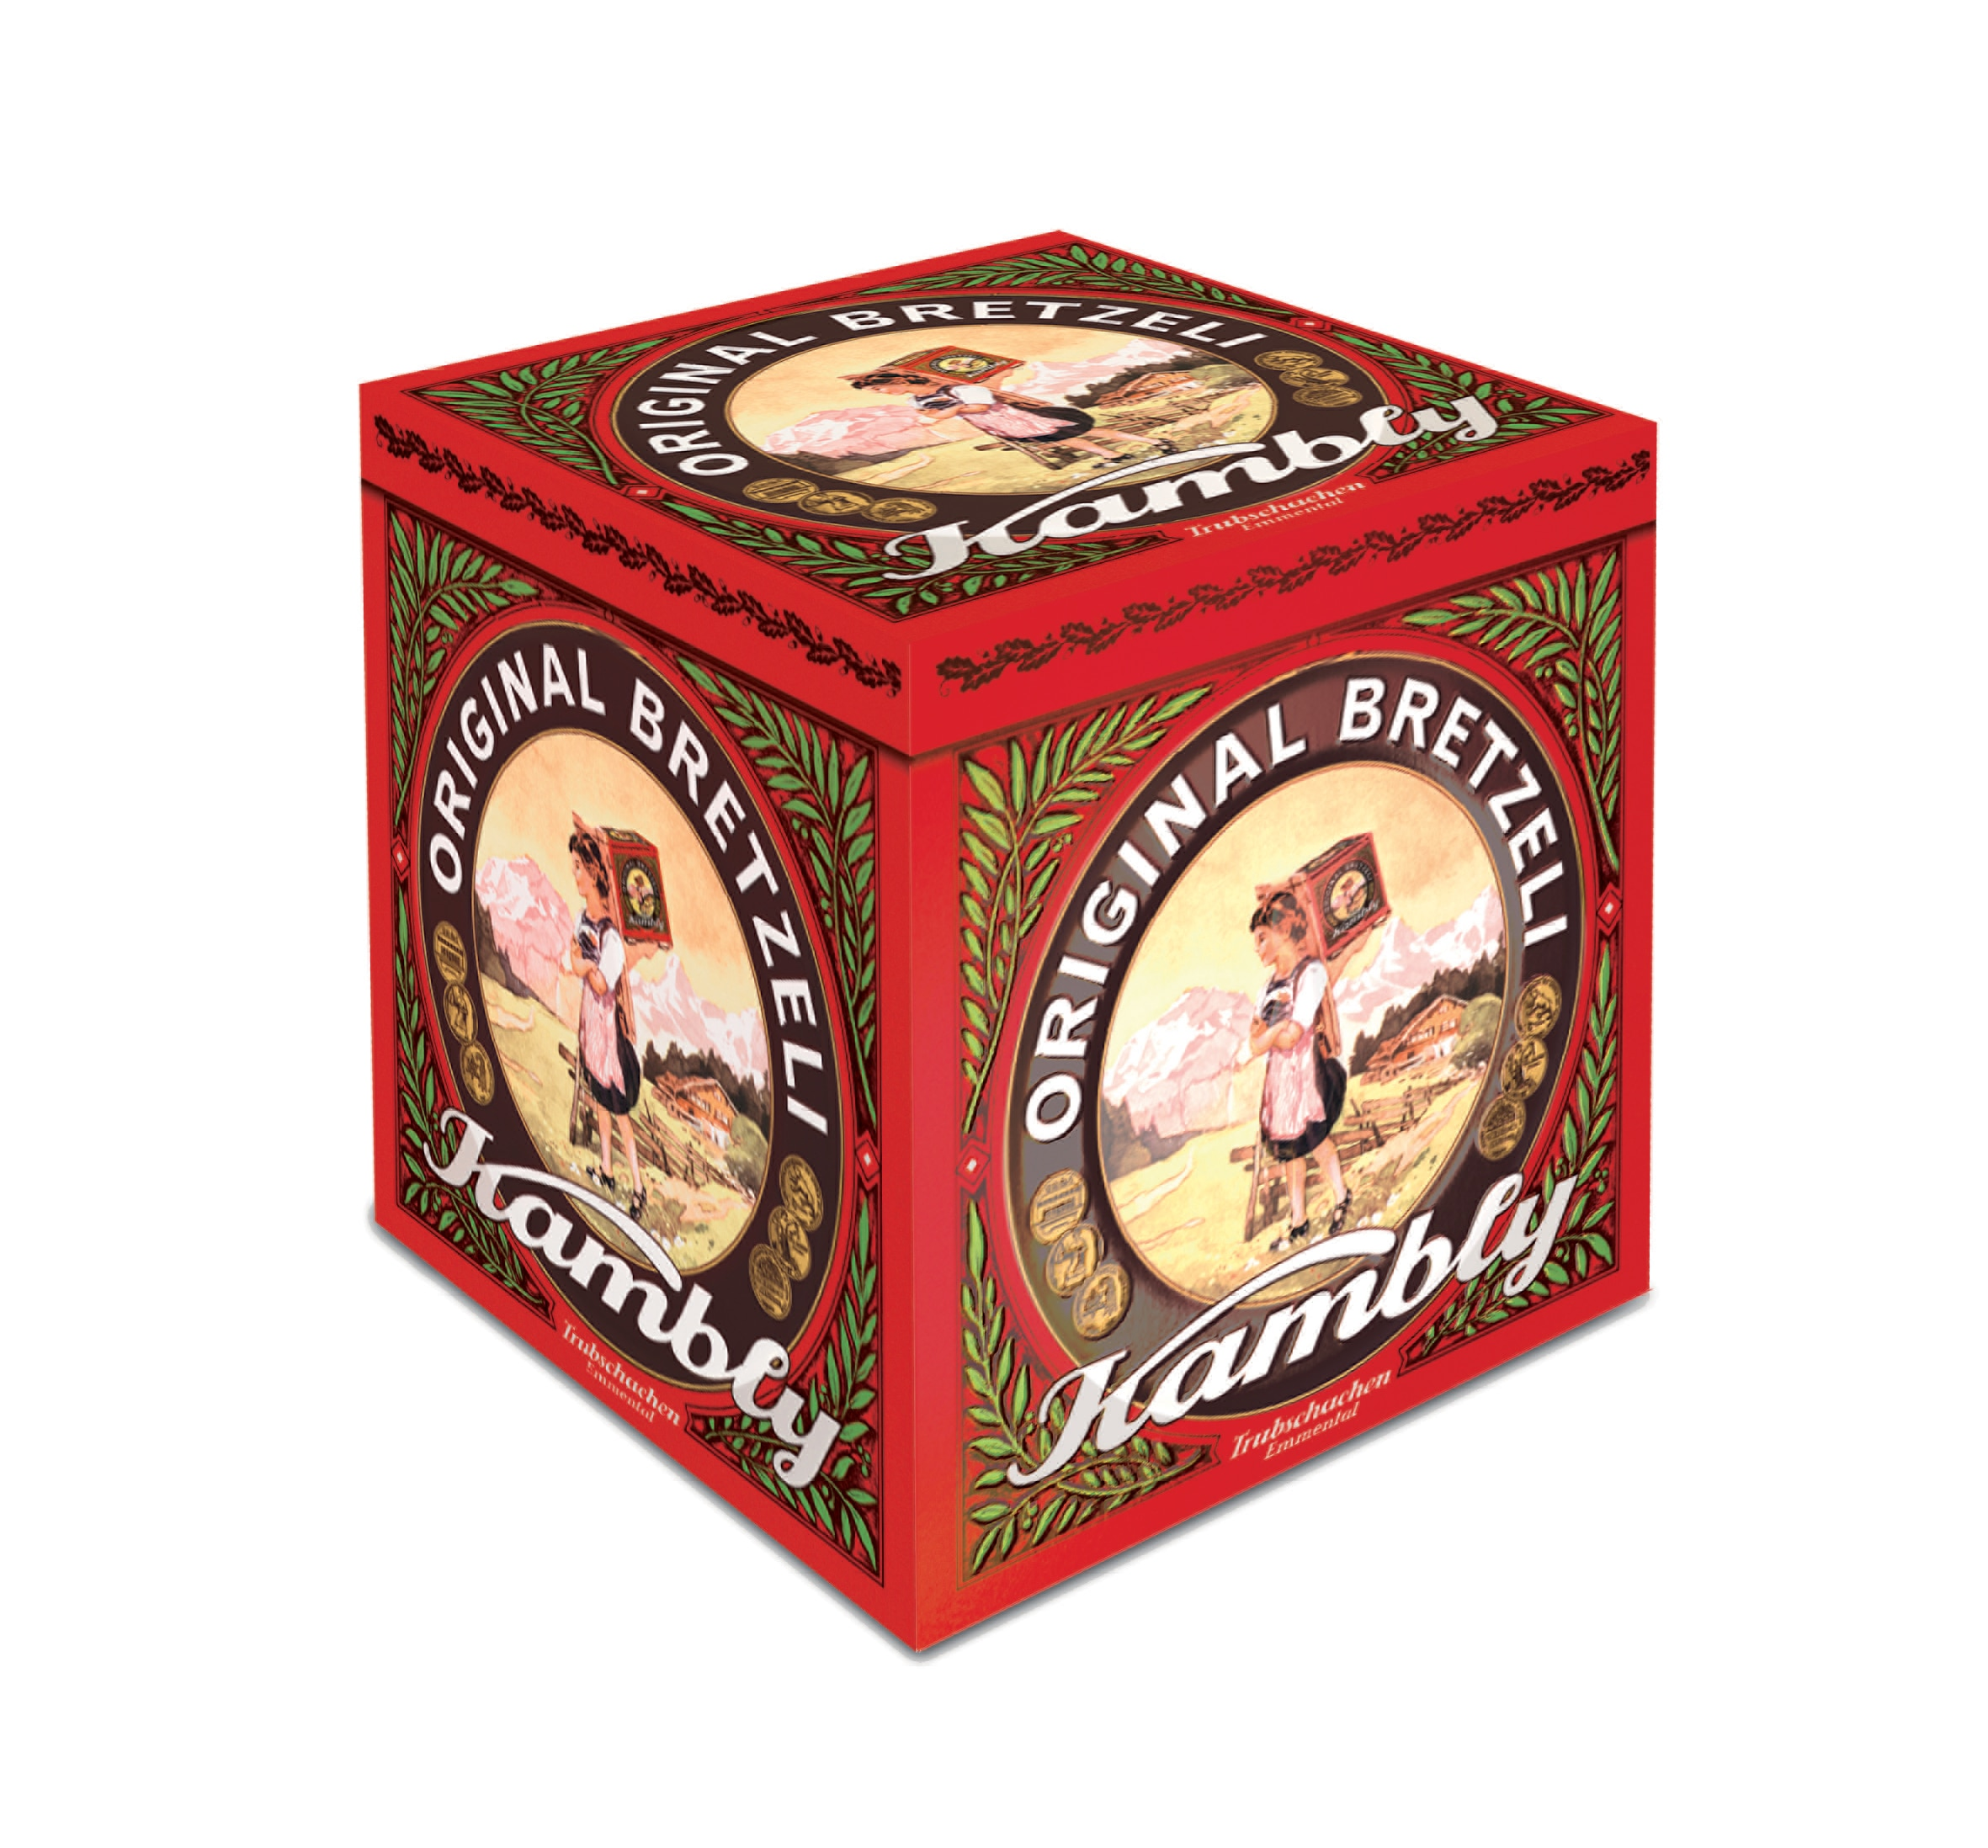 A tin of original Bretzeli - a house specialty going back a century (Kambly)